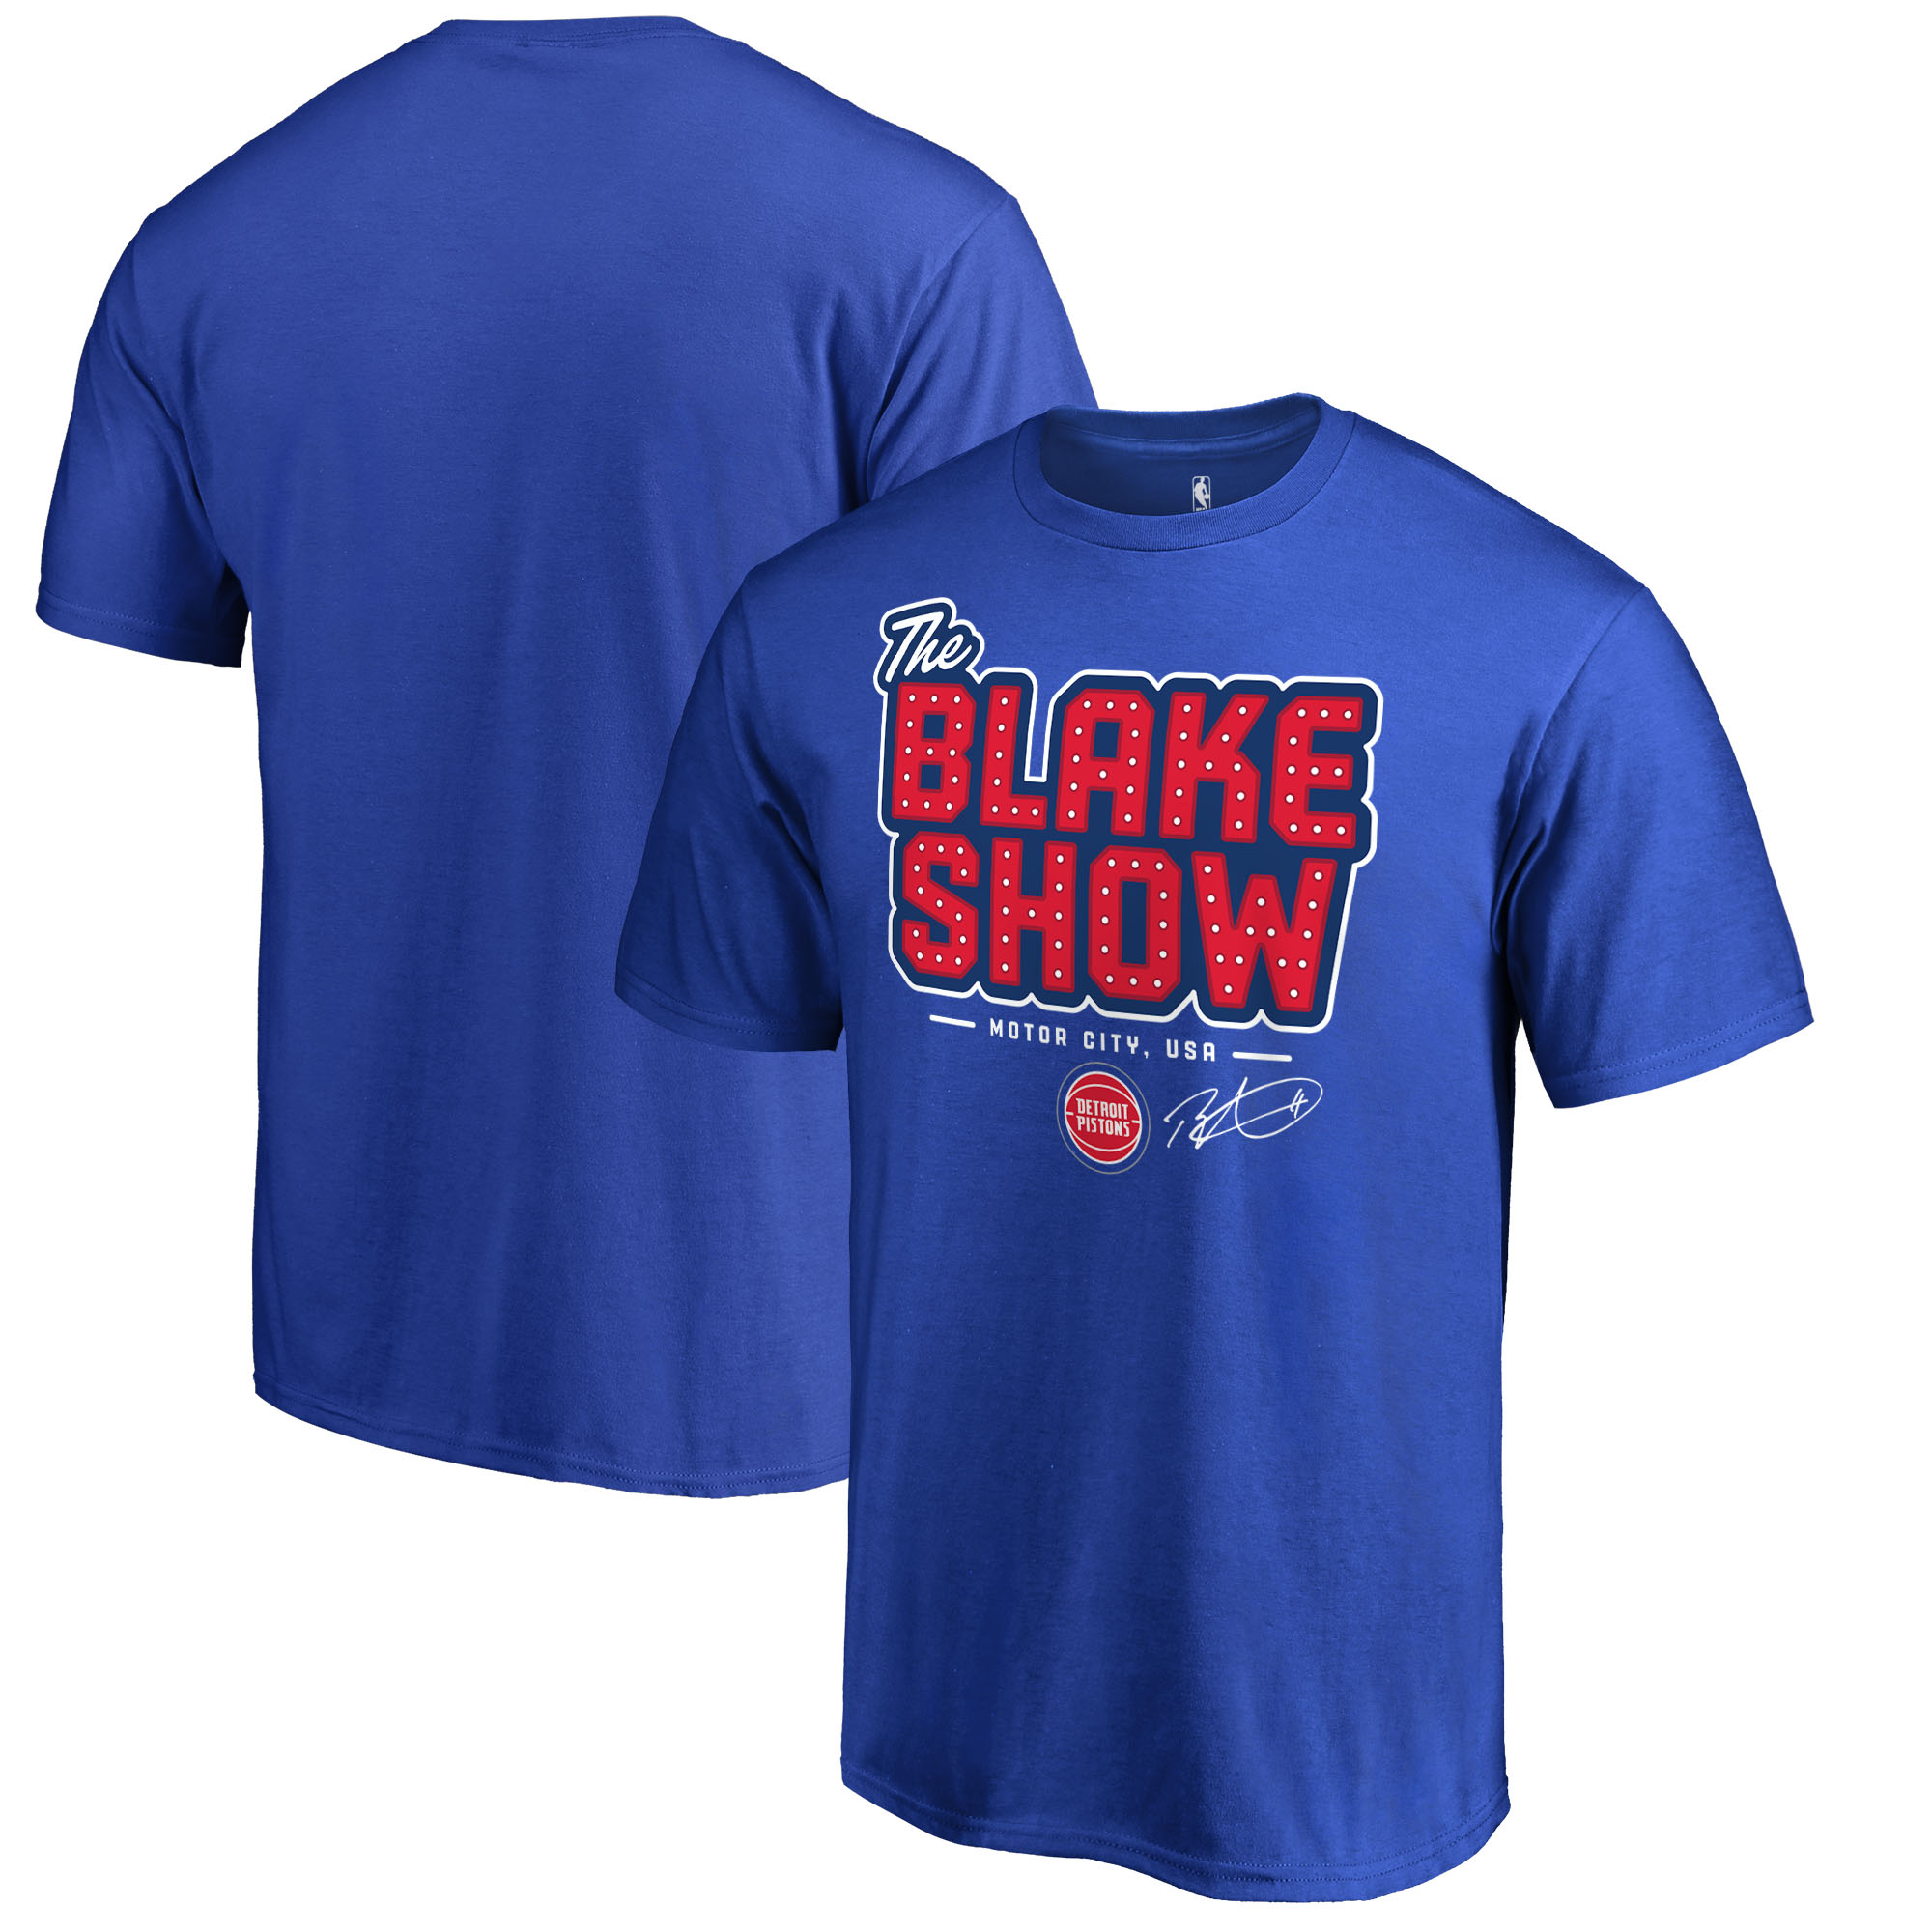 Blake Griffin Detroit Pistons Fanatics Branded Hometown Collection The Blake Show T-Shirt - Royal